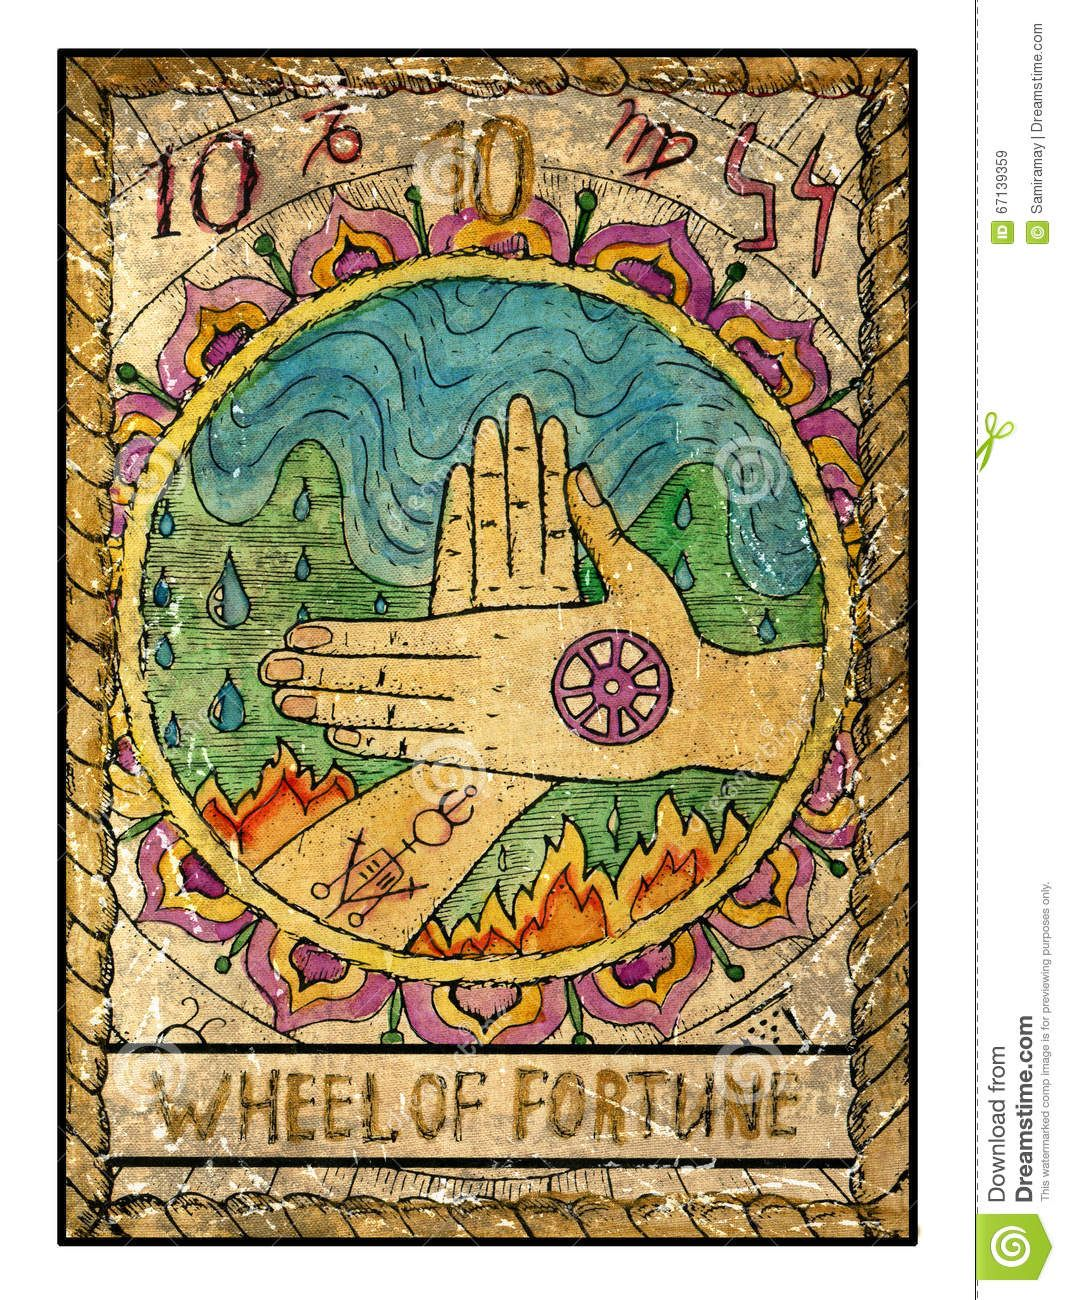 Old Tarot Cards Full Deck Wheel Of Fortune Stock Illustration Image 67139359 Tarot Karten Kunst Mystische Symbole Tarotkarten Lesen